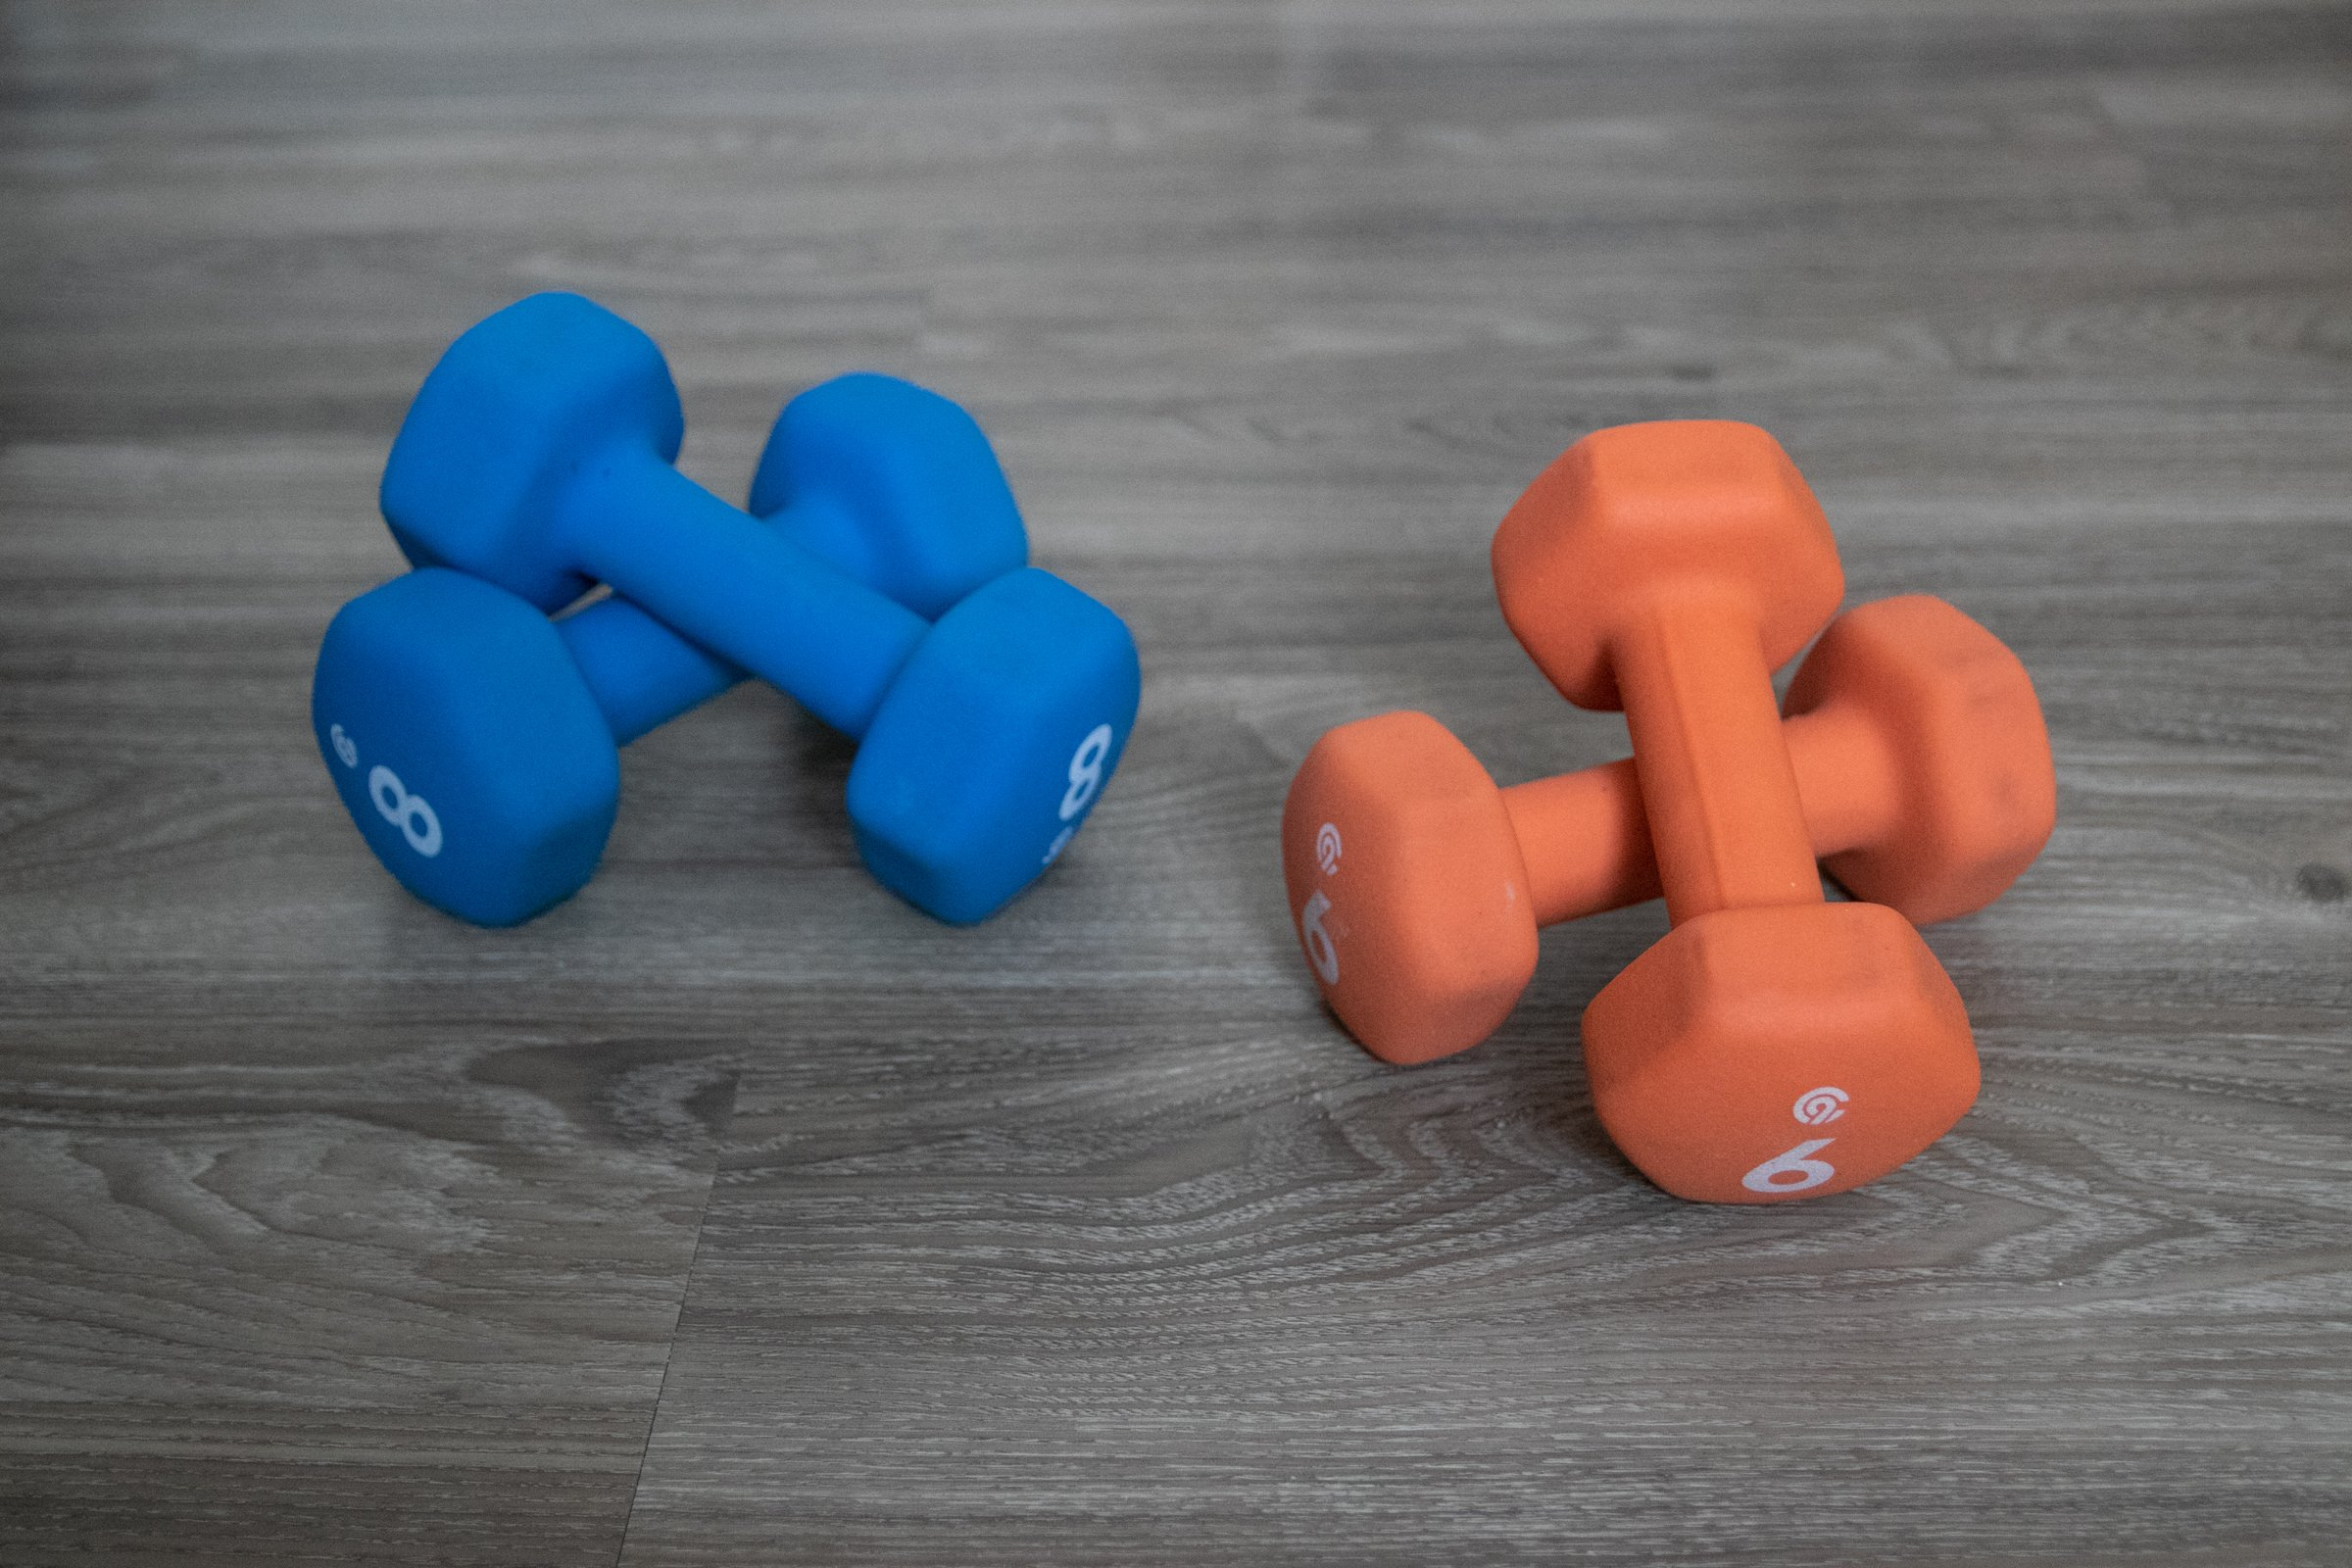 Two Sets Of Brightly Colored Dumbbells On Wooden Surface